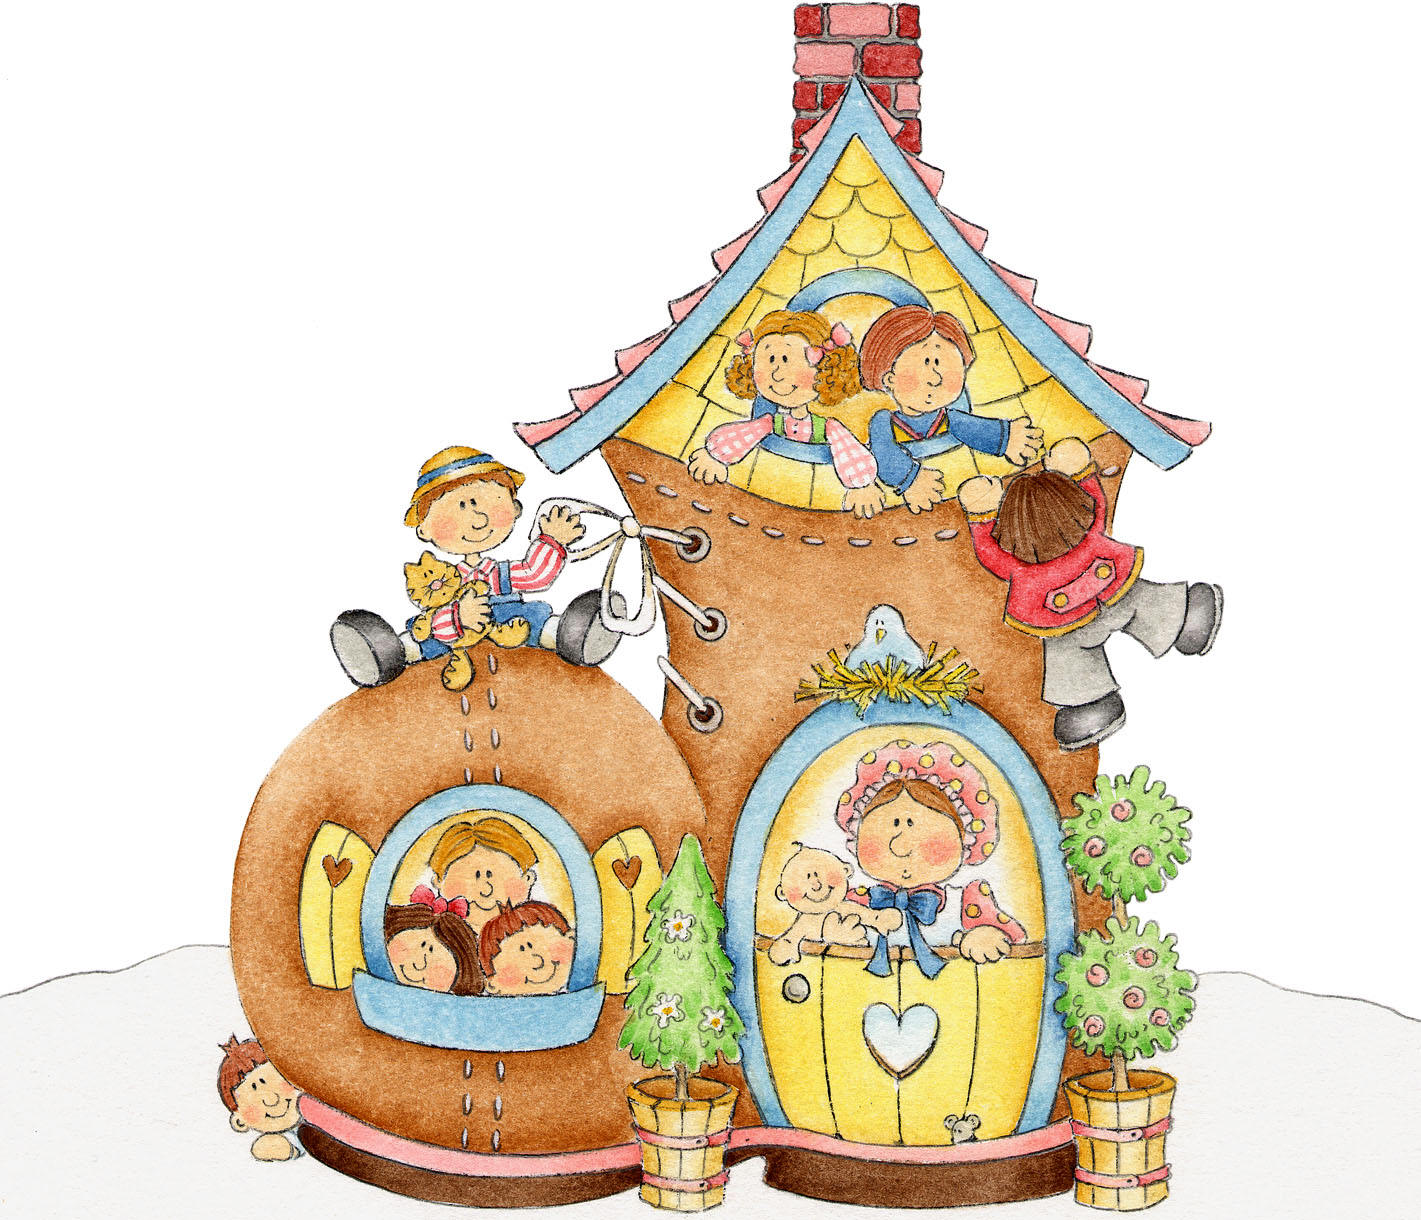 1000  images about nursery rhymes on Pinterest | Nursery rhyme crafts, Science experiments and Literacy